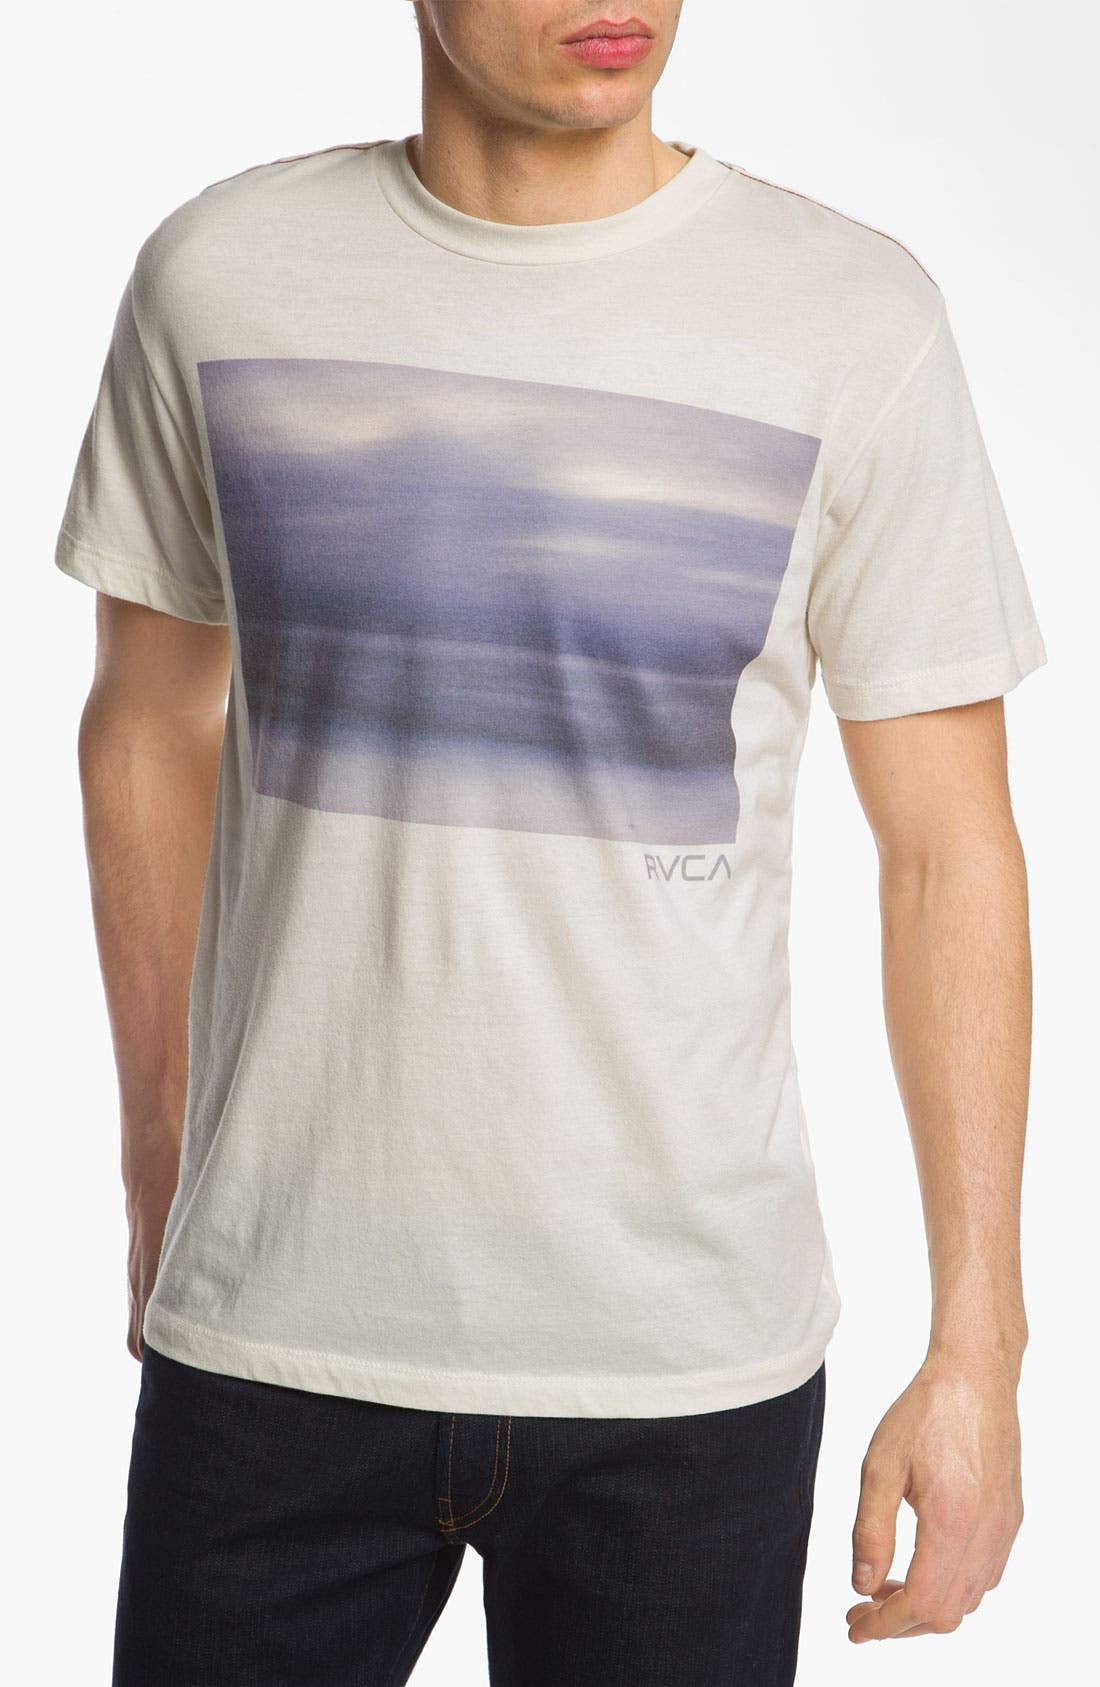 Main Image - RVCA 'Night for Day' Vintage Wash T-Shirt